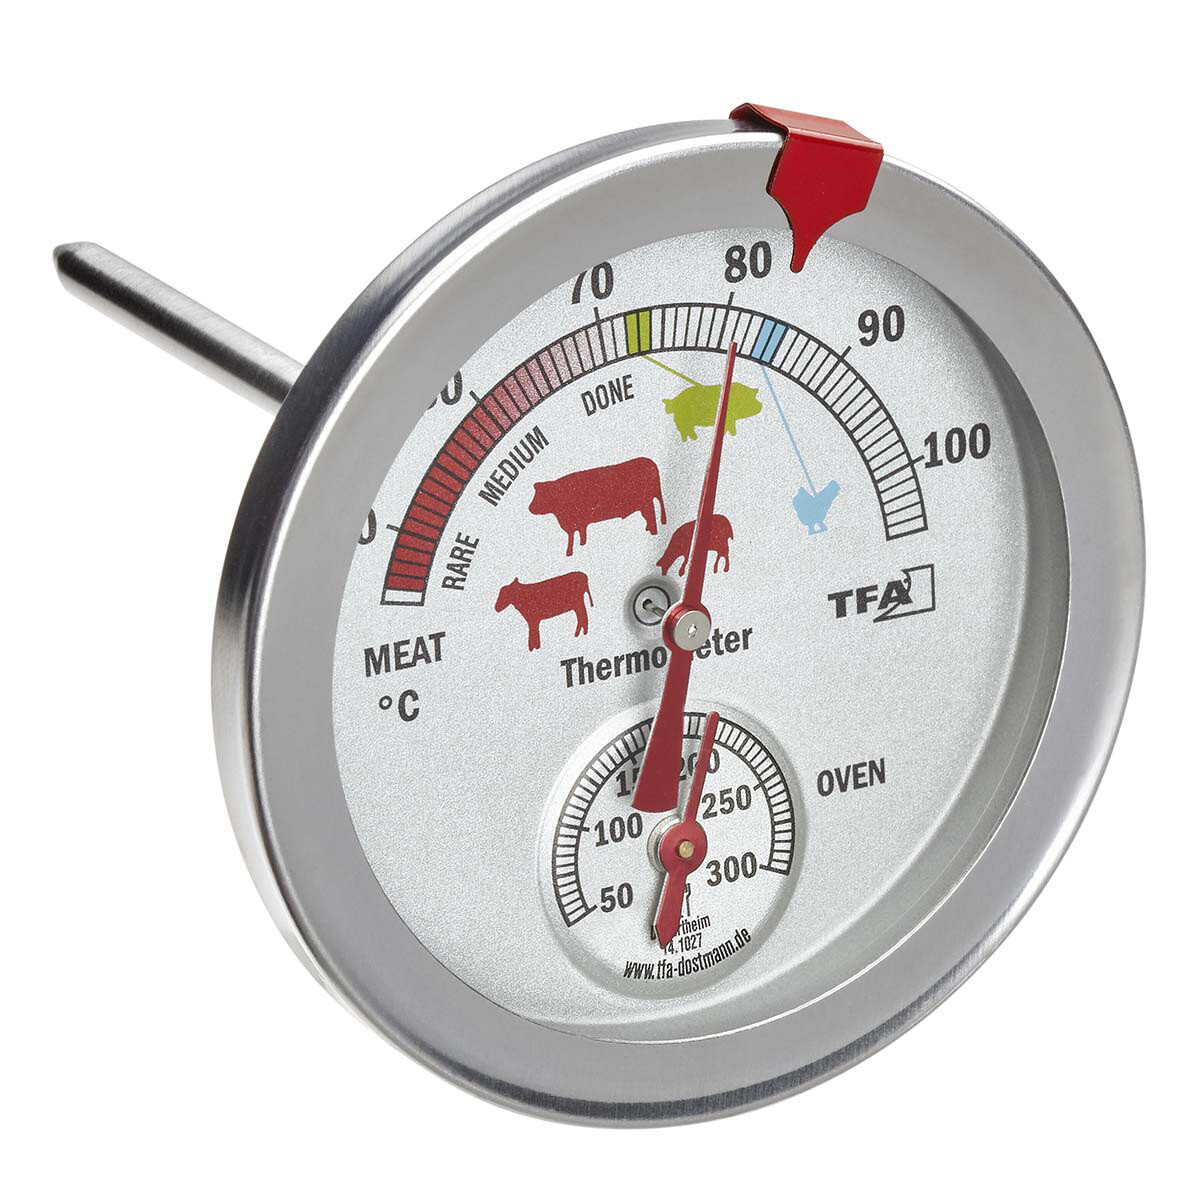 Analoges Braten- / Ofenthermometer